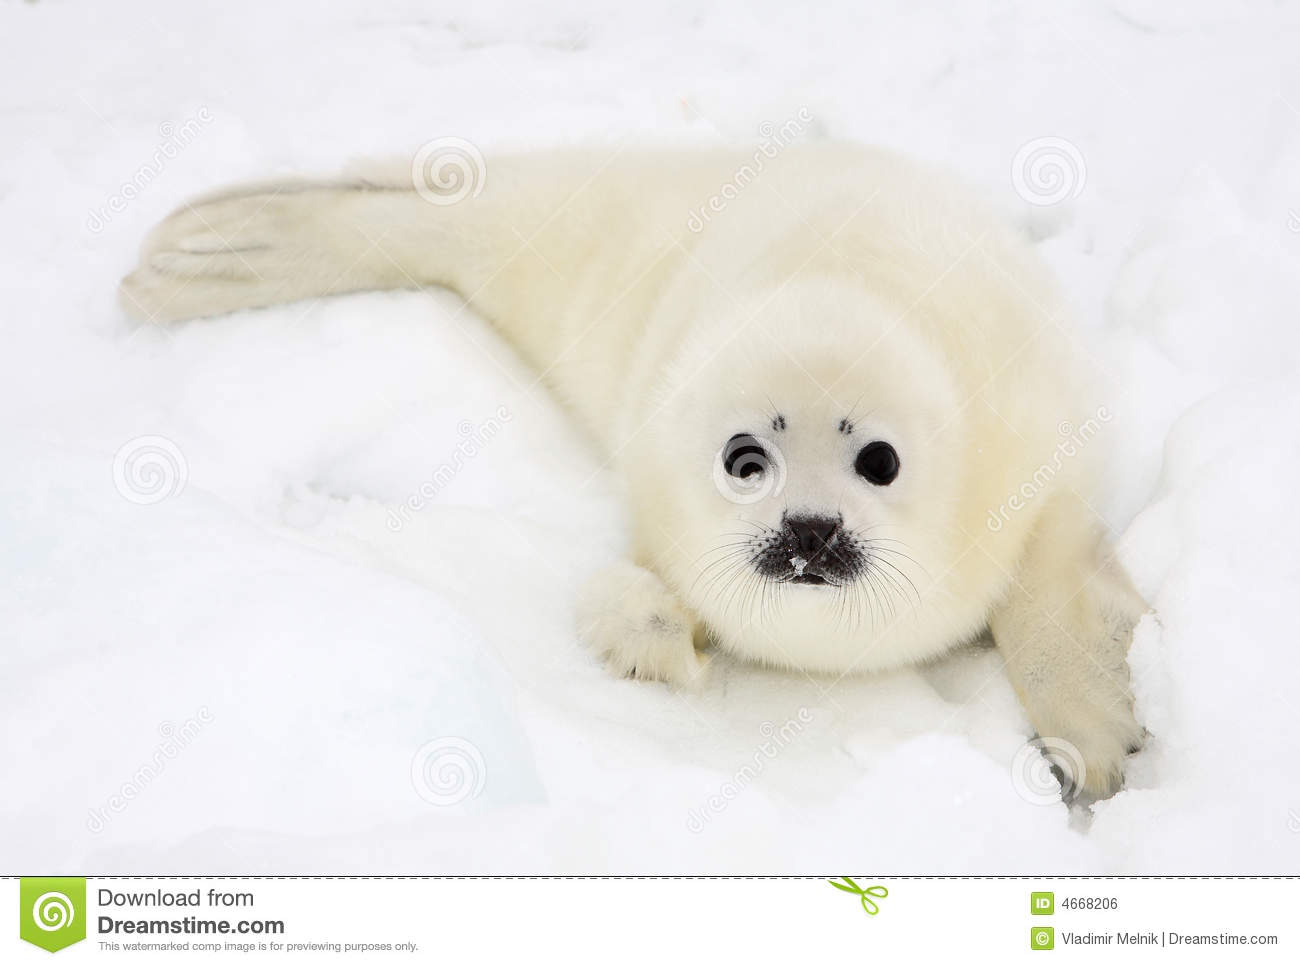 Newborn Harp Seal Pup Royalty Free Stock Image   Image  4668206